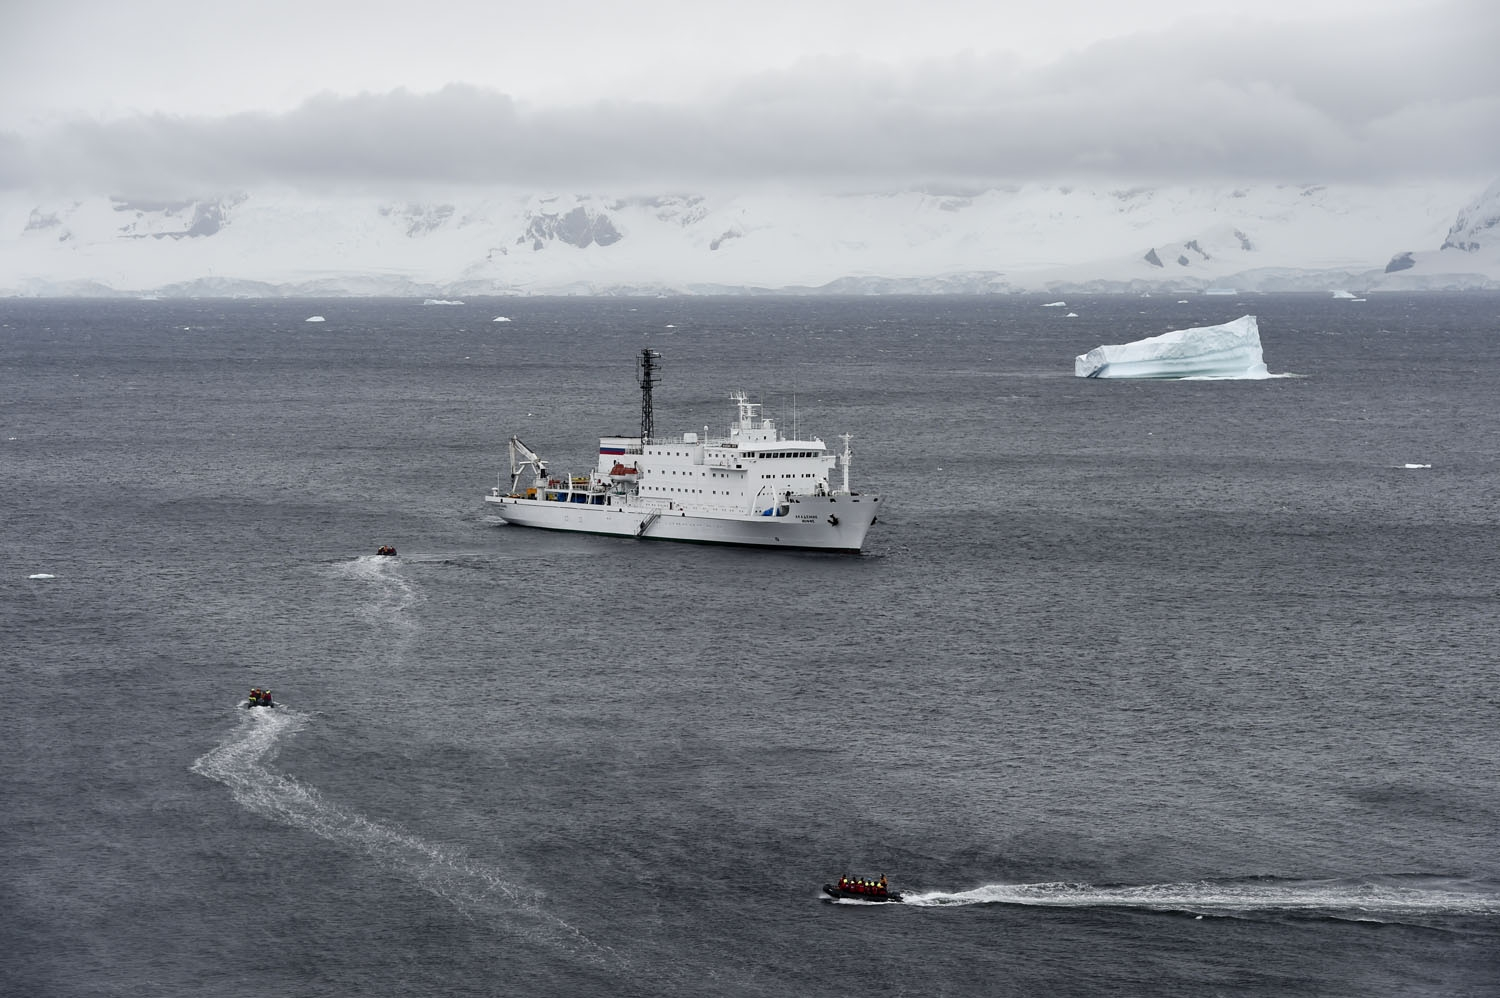 Tourist aboard zodiacs make their way to the oceanographic acoustic research vessel Akademik Ioffe in the western Antarctic peninsula on March 05, 2016